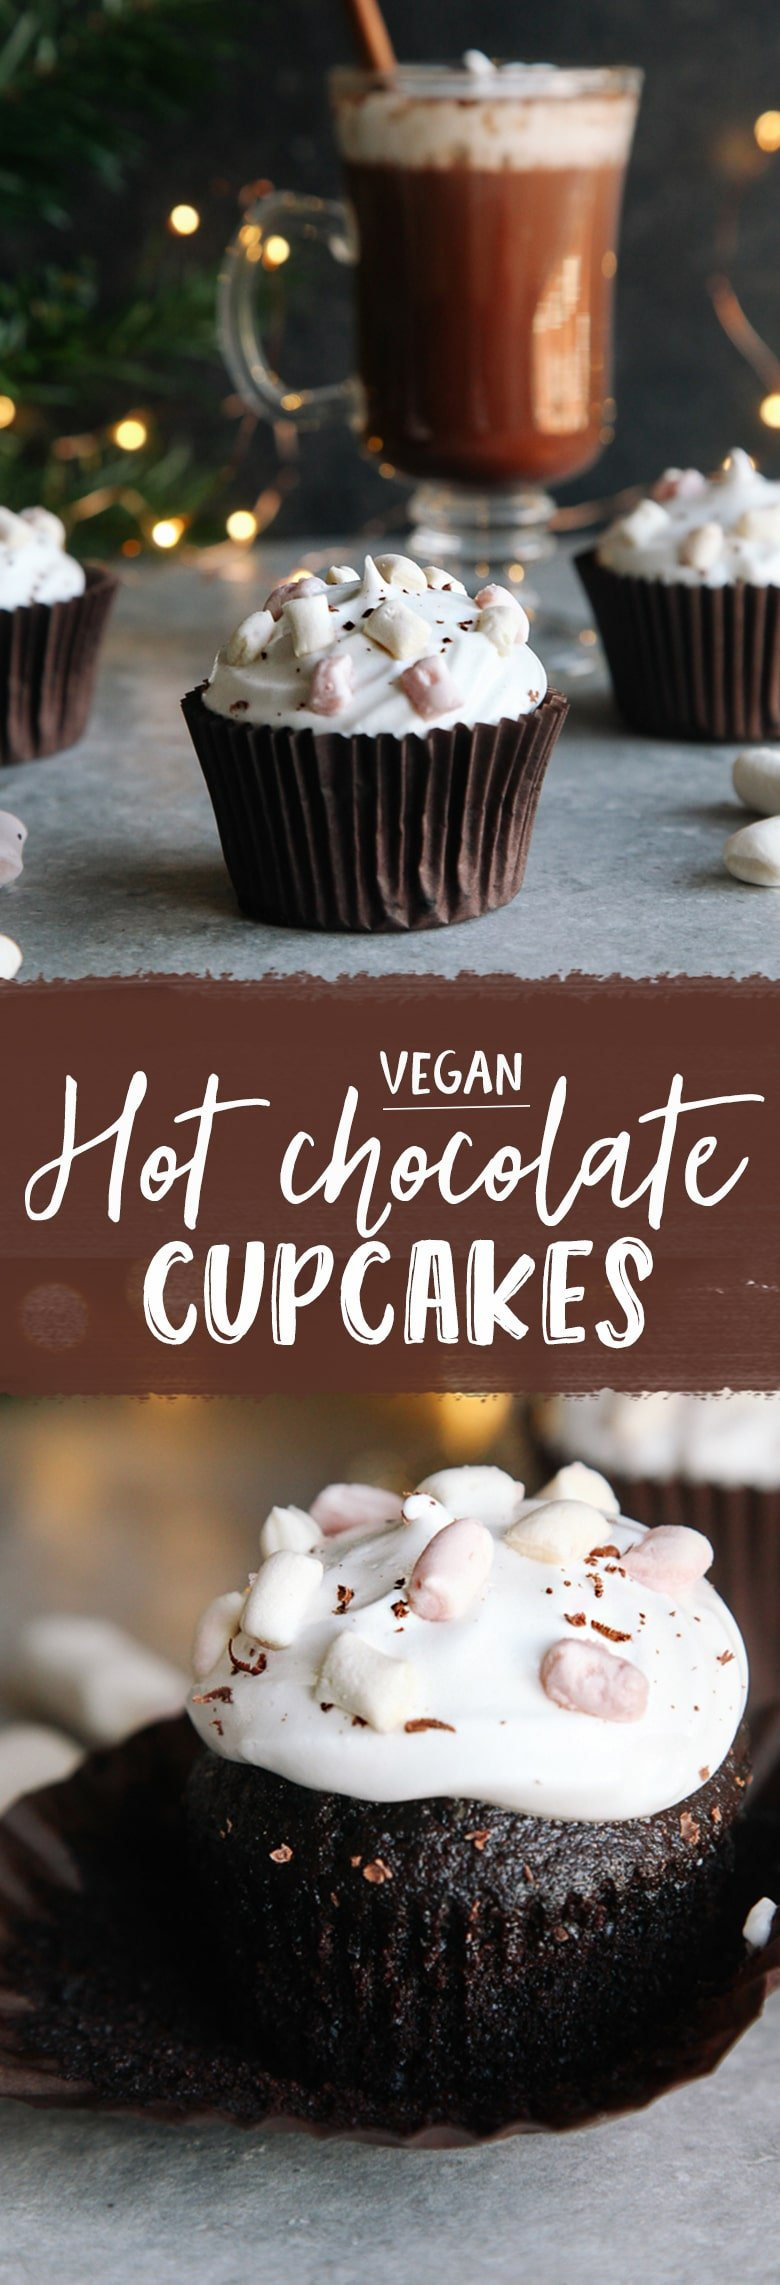 Hot Chocolate Cupcakes (Vegan) - Wallflower Kitchen